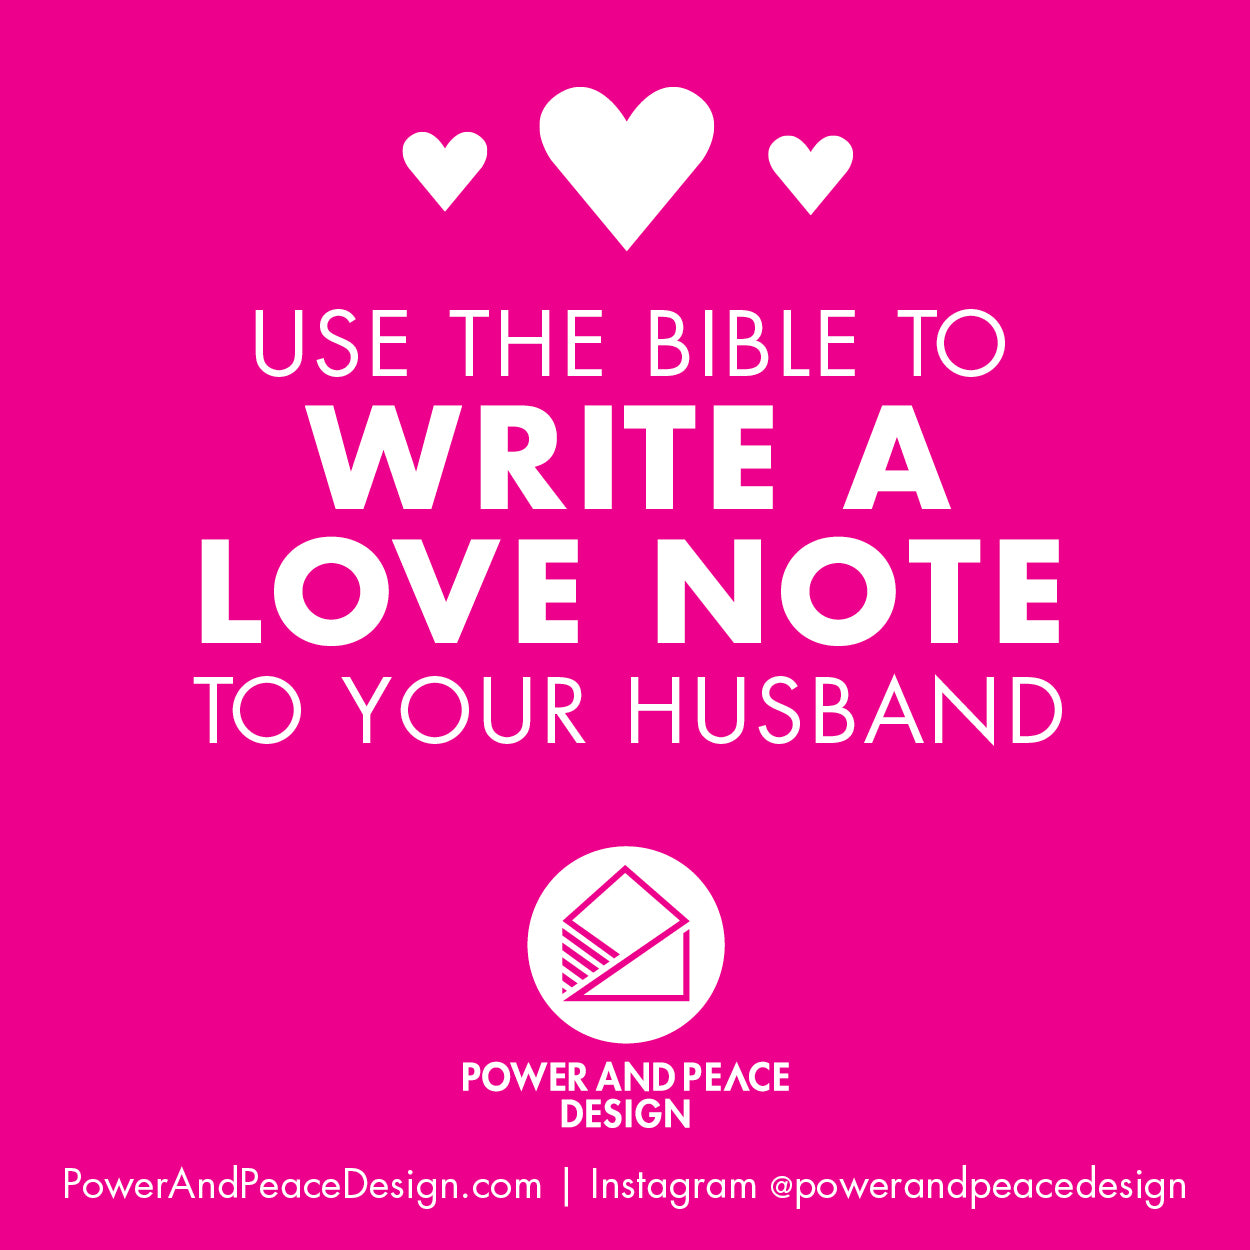 Use the Bible to write a love note to your husband